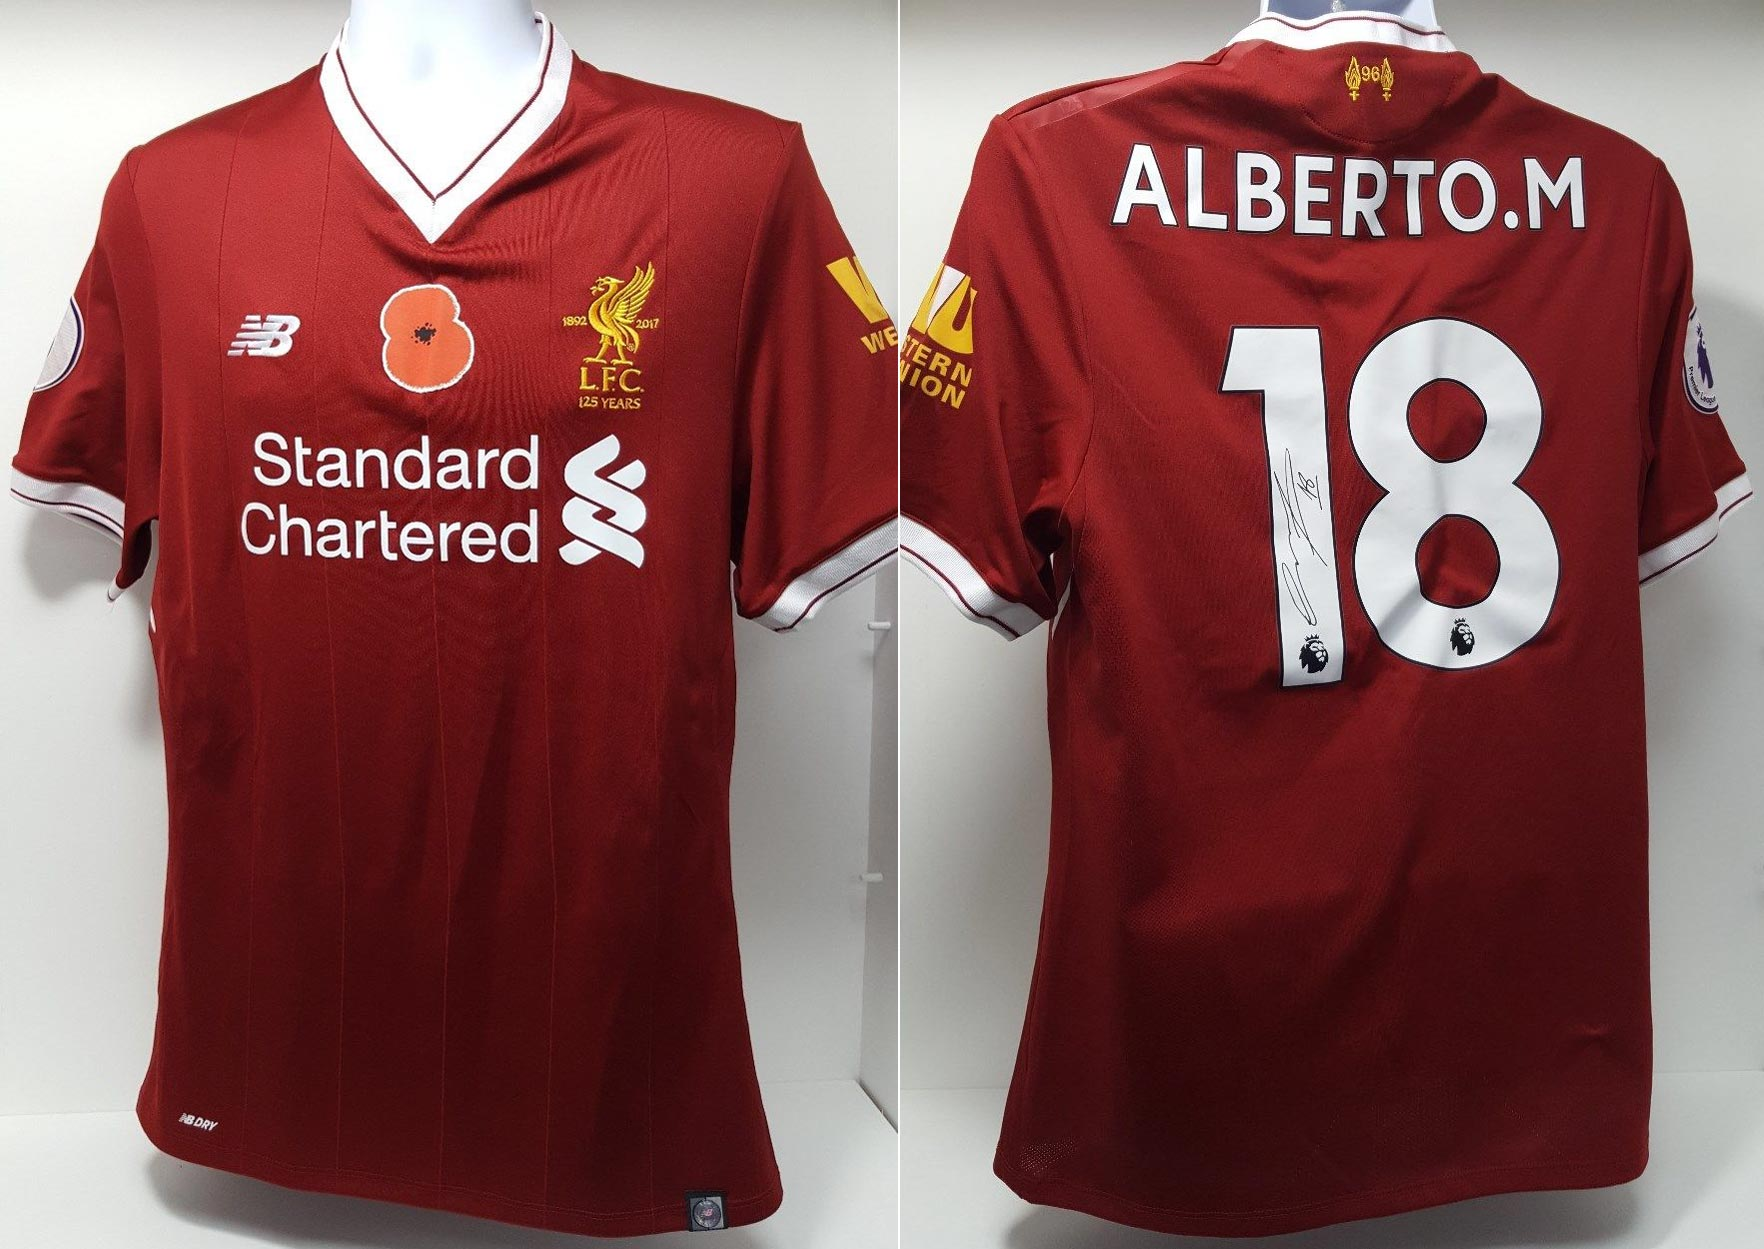 5c11907ea65 2017-18 Premier League Home player shirt short sleeve № 18 Alberto Moreno  (poppy badge